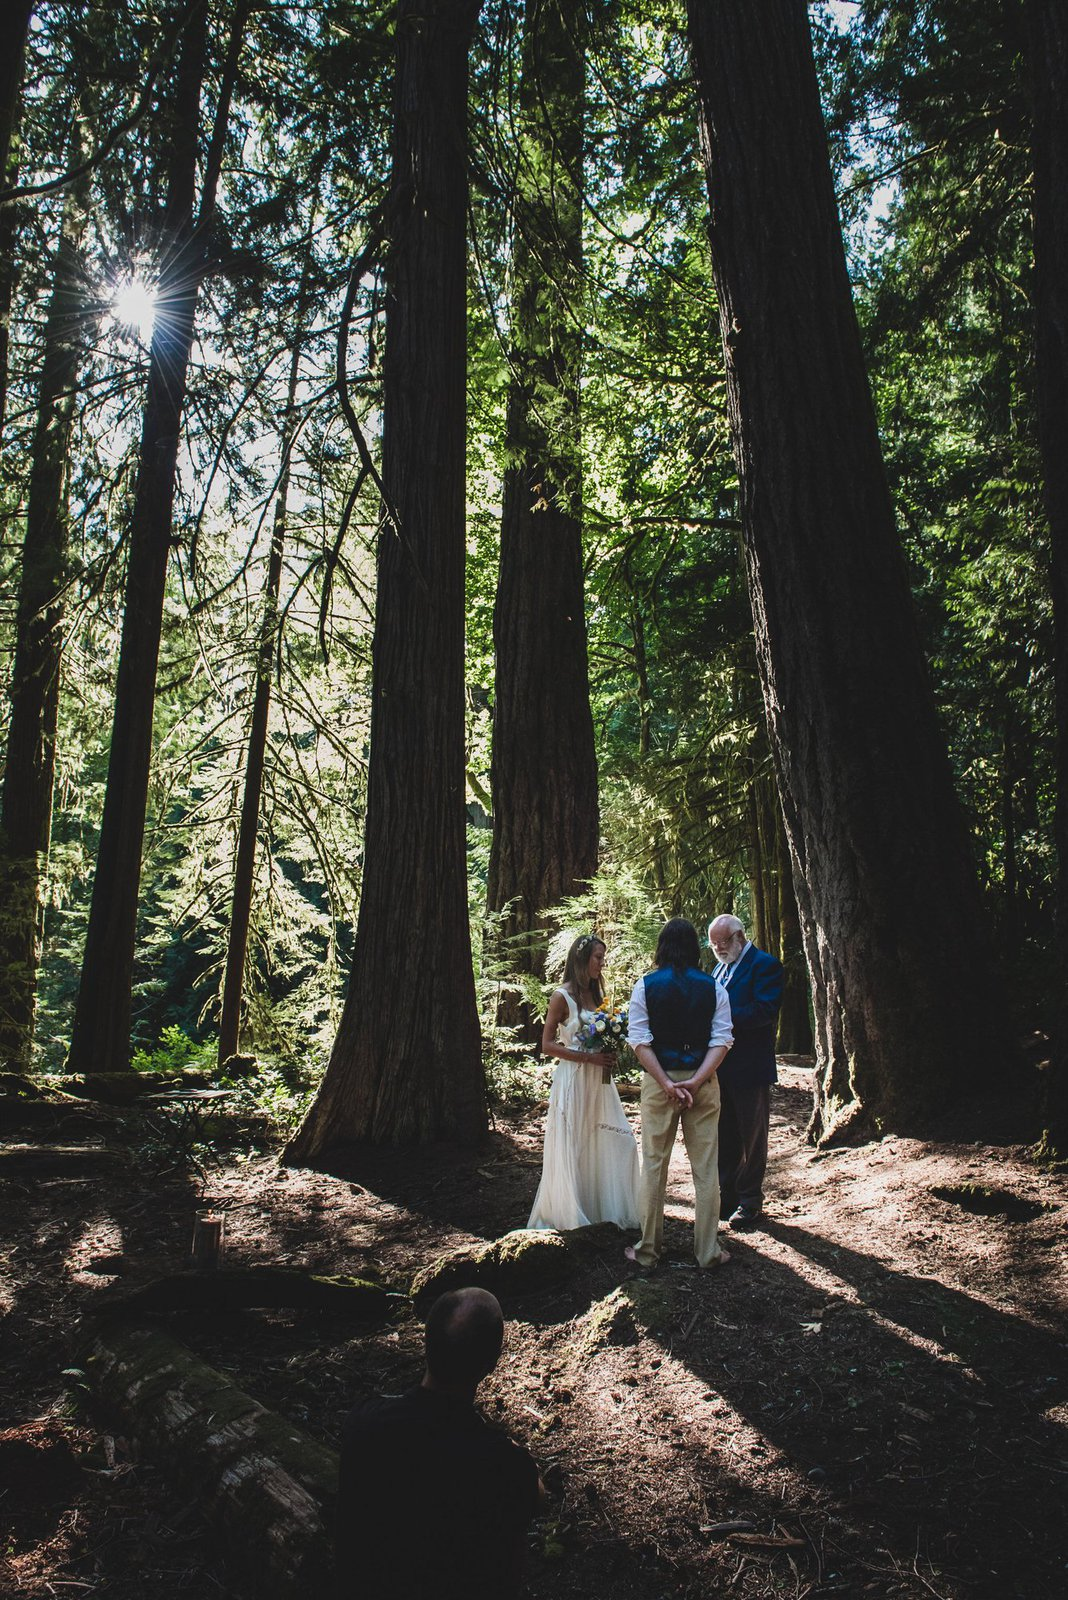 Wedding in Vancouver Island.